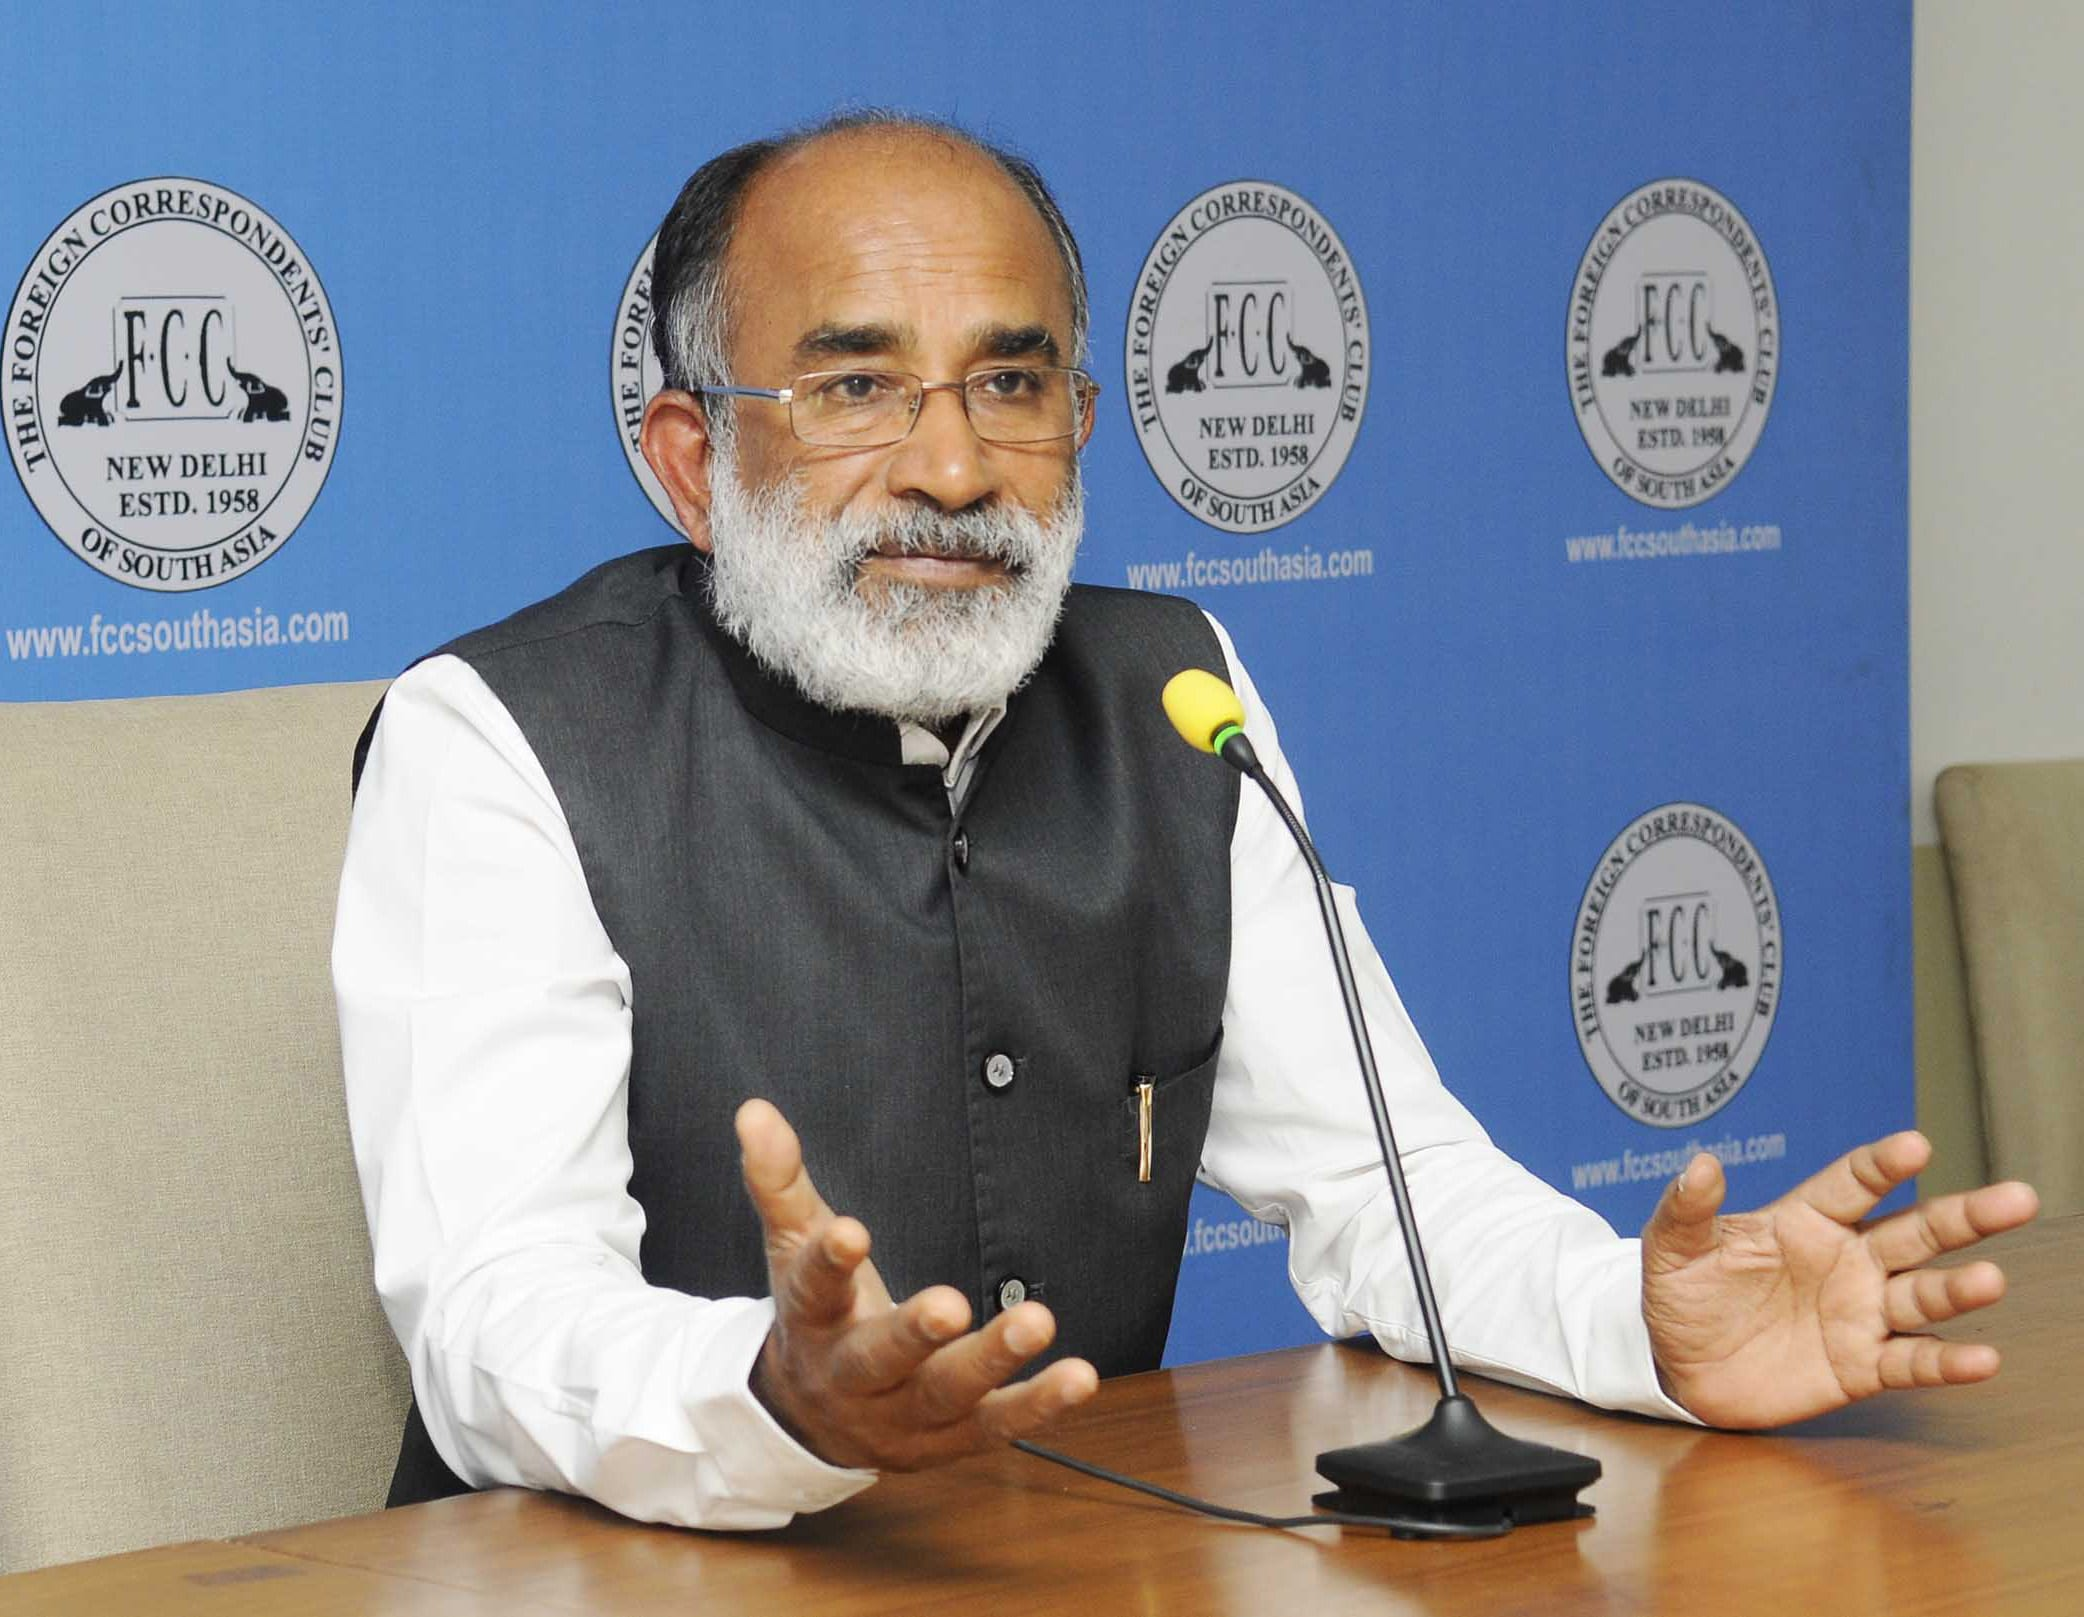 14.62 million Jobs created by Tourism sector in last 4 years: Minister K. J. Alphons